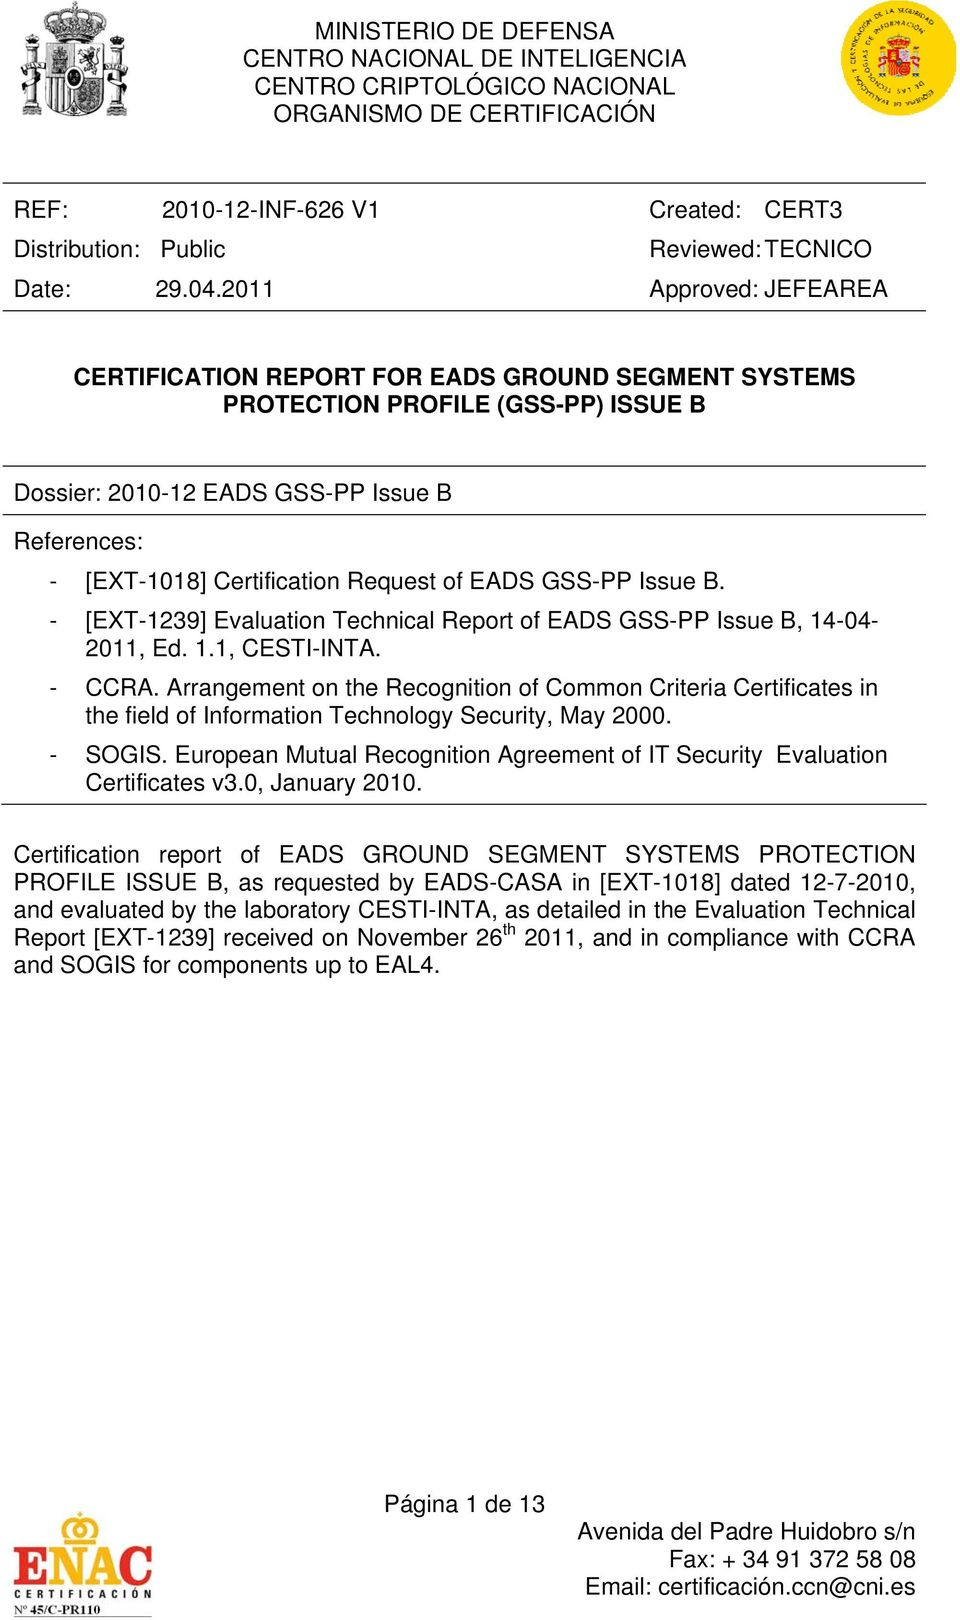 [EXT-1018] Certification Request of EADS GSS-PP Issue B. - [EXT-1239] Evaluation Technical Report of EADS GSS-PP Issue B, 14-04- 2011, Ed. 1.1, CESTI-INTA. - CCRA.